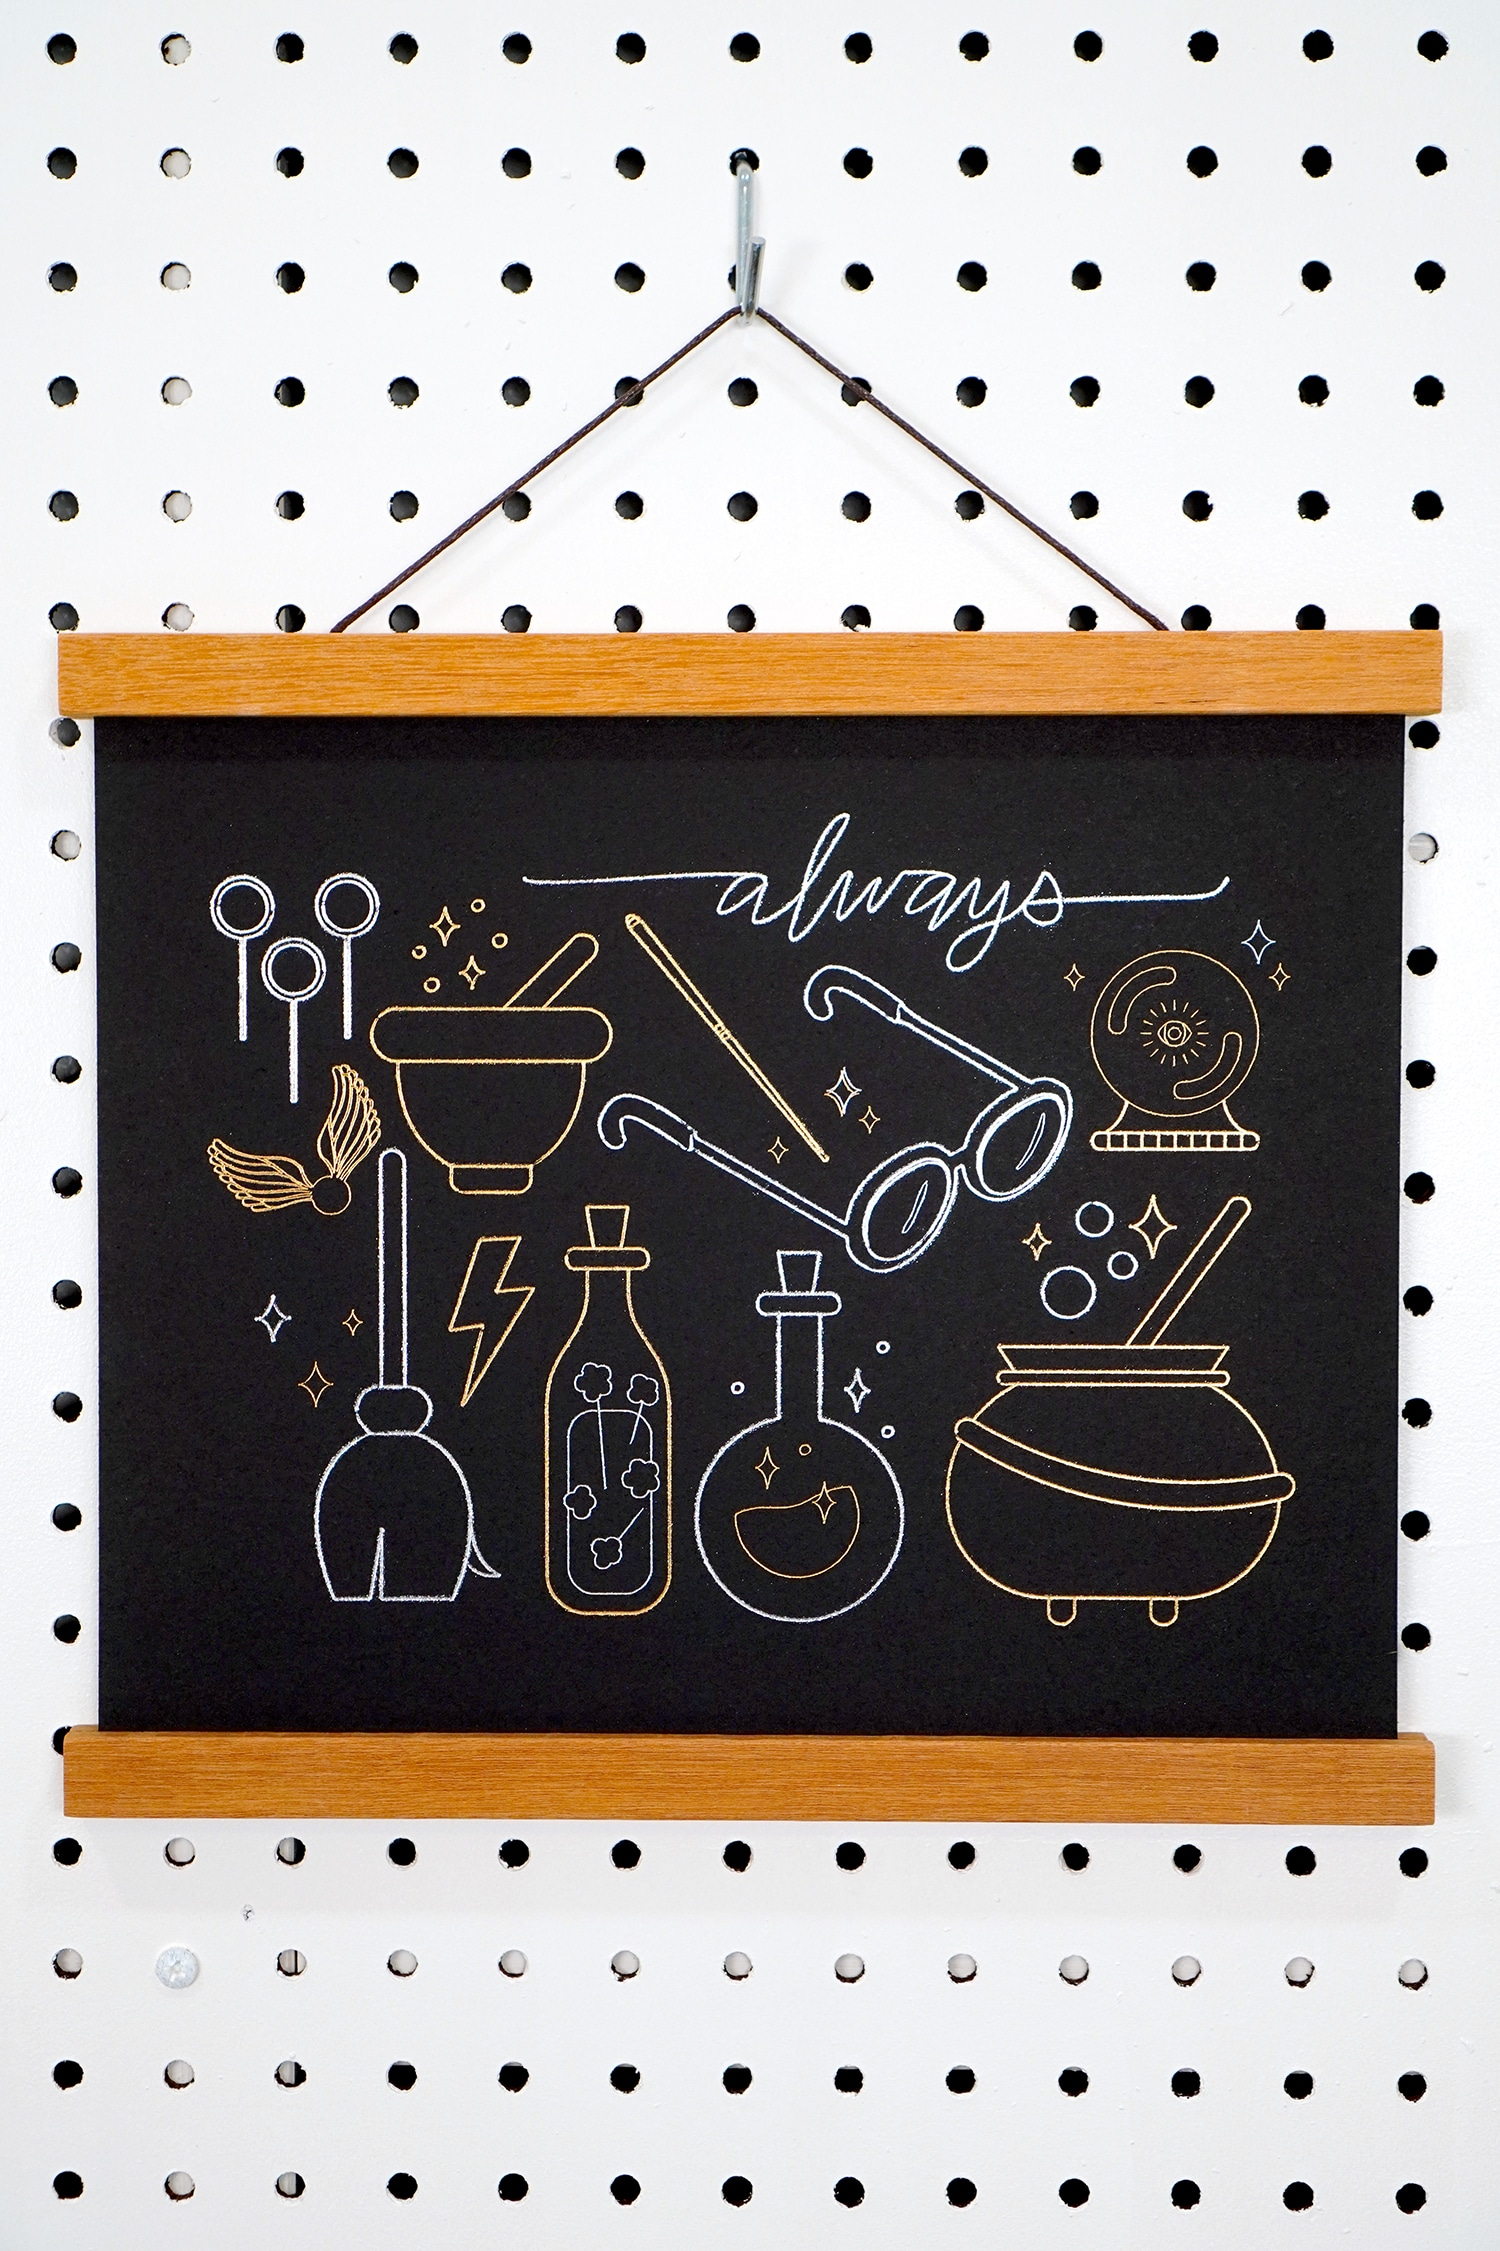 Gold and Silver Foil Harry Potter Artwork hanging on pegboard